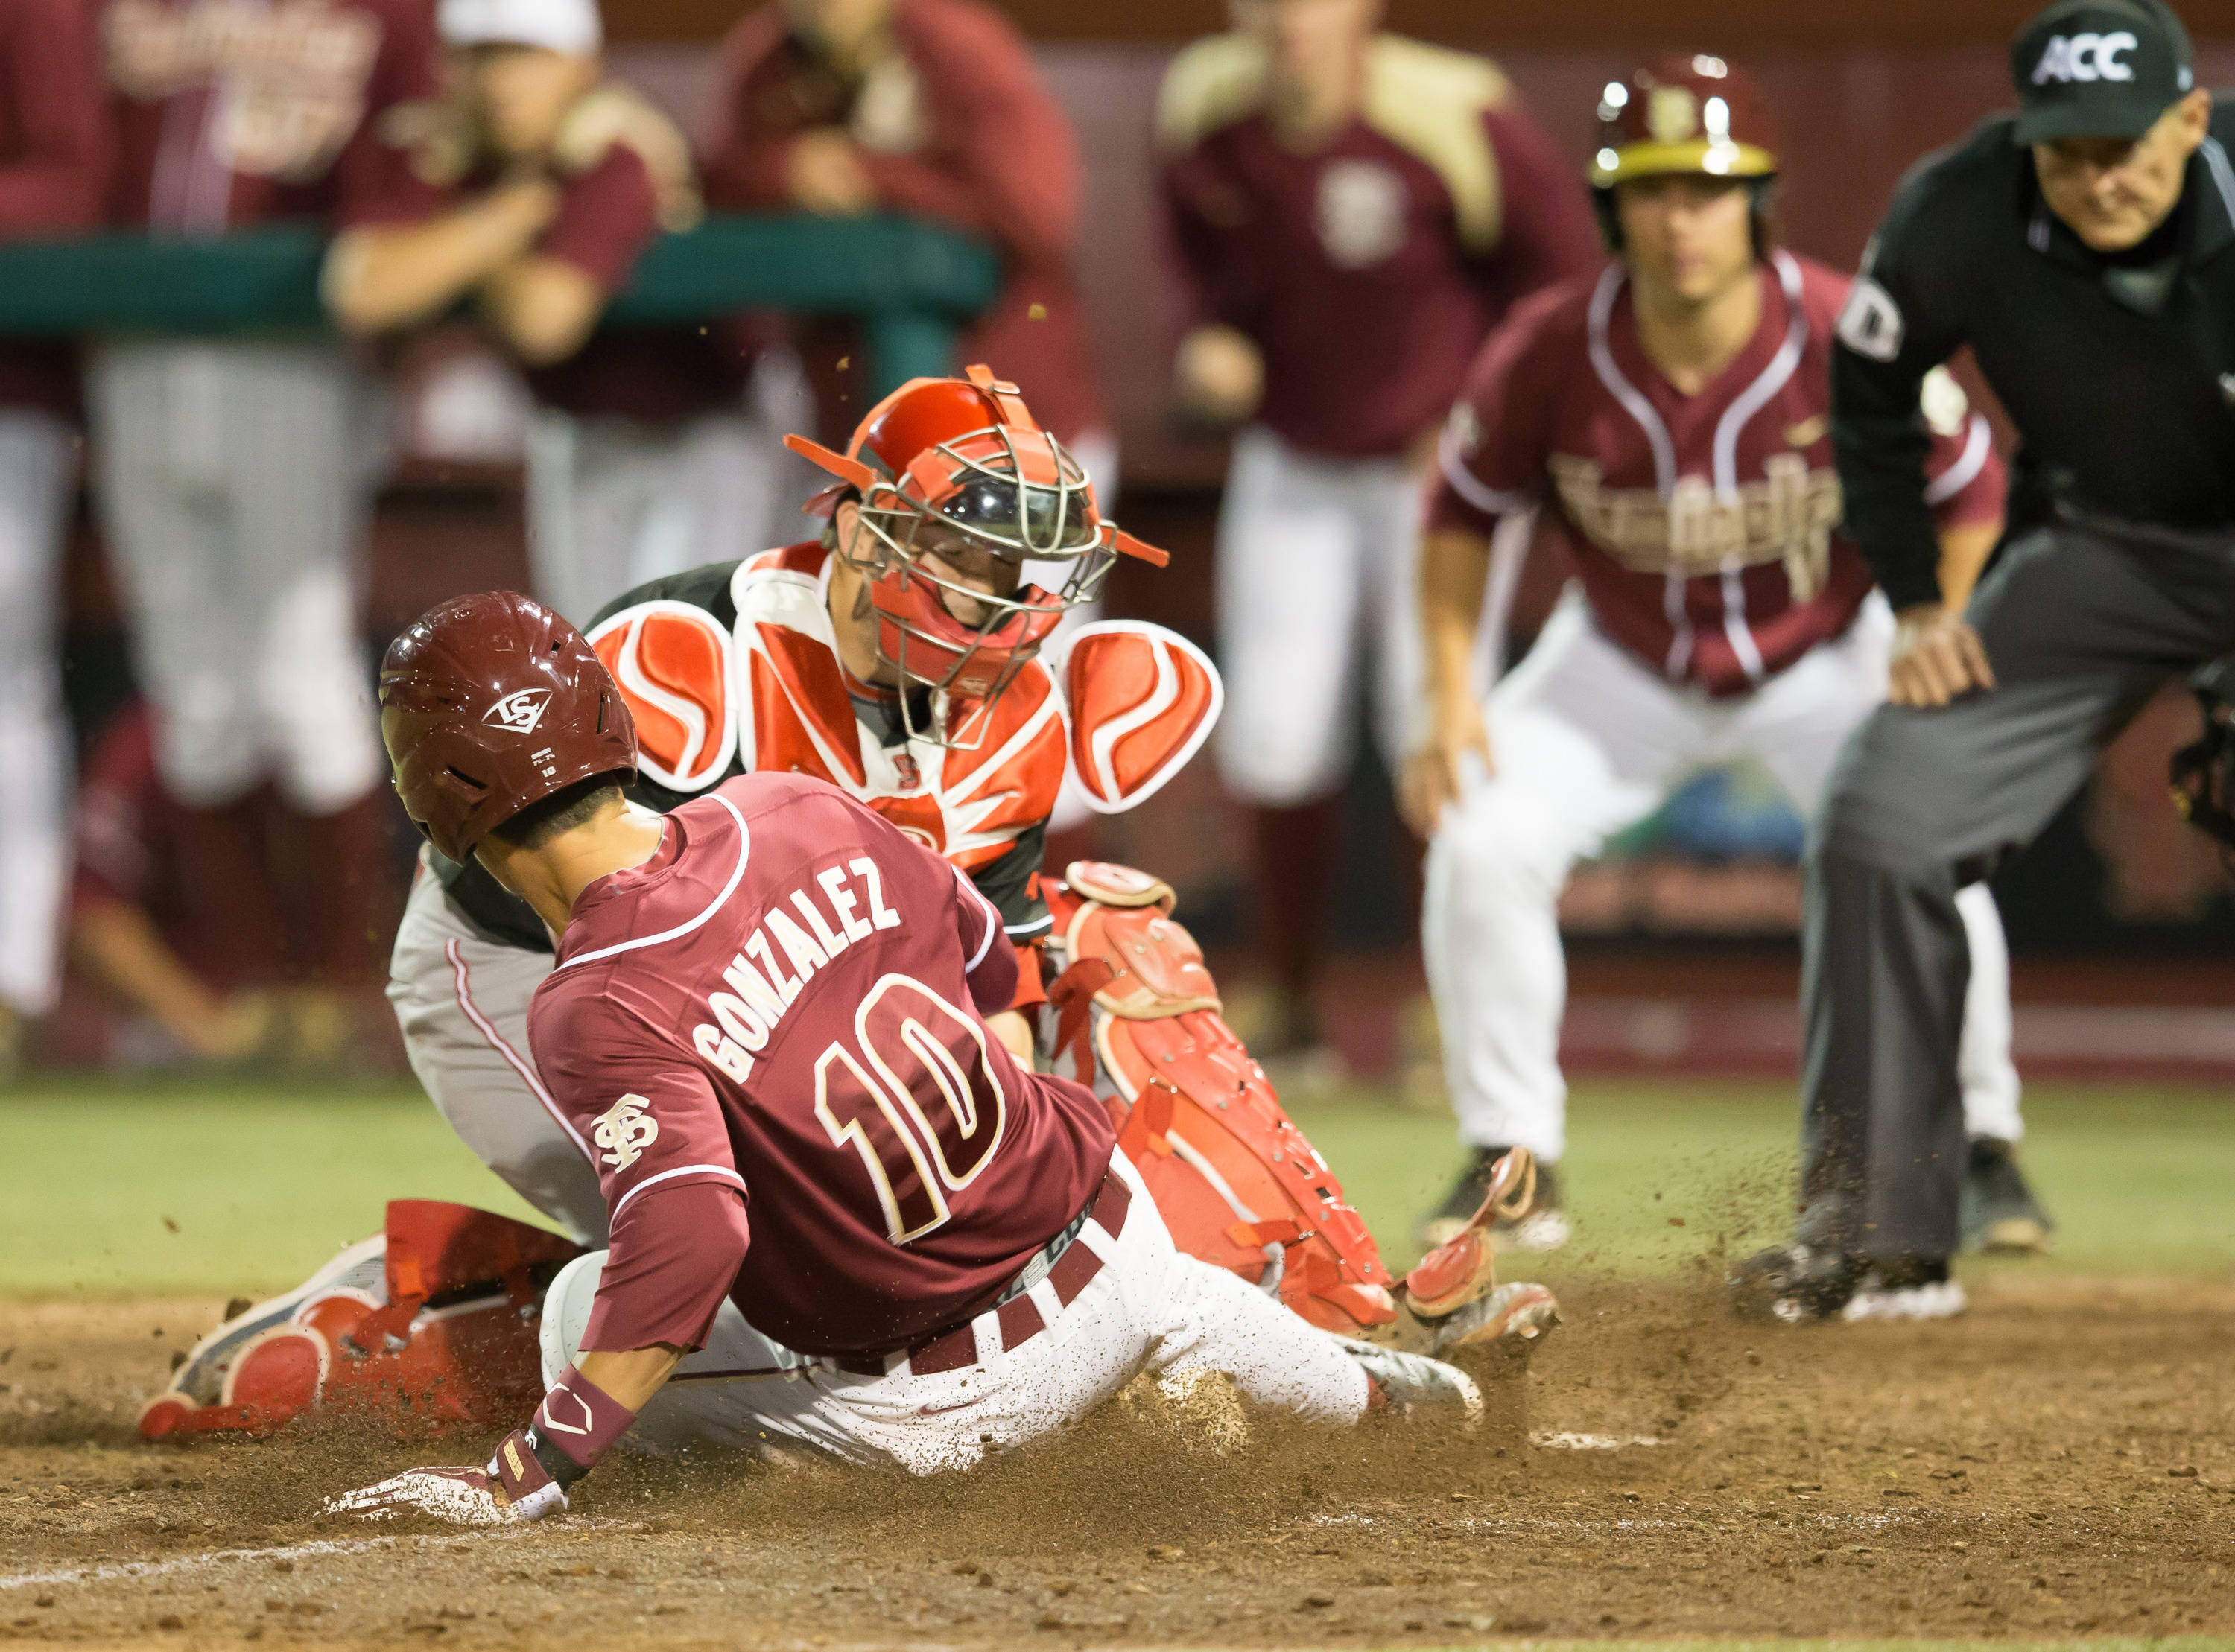 Justin Gonzalez (10) is tagged out trying to score in the 8th inning.